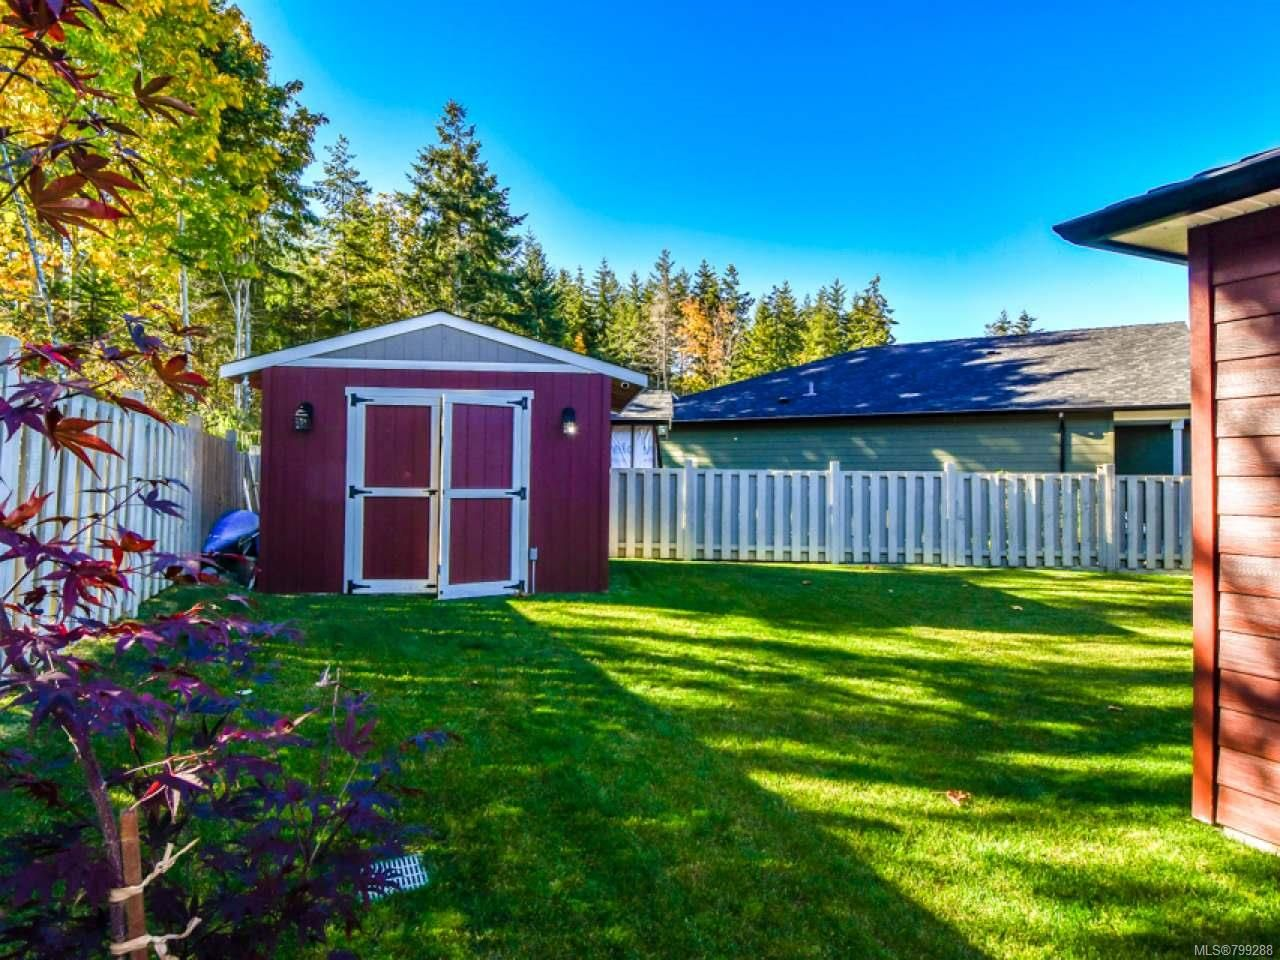 Photo 10: Photos: 11 301 Arizona Dr in CAMPBELL RIVER: CR Willow Point Half Duplex for sale (Campbell River)  : MLS®# 799288